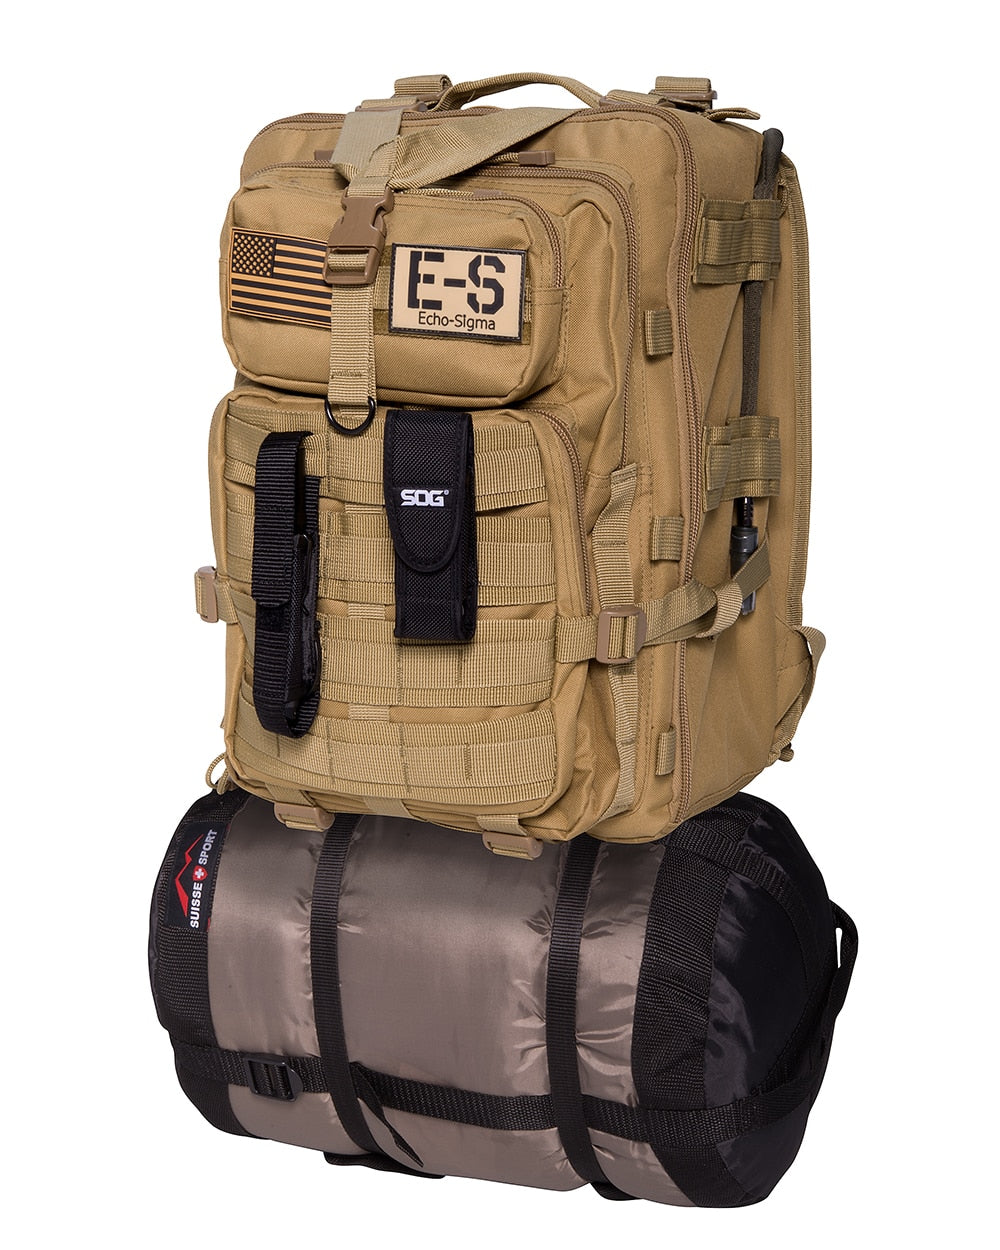 Bug Out Bag Complete Emergency Kit